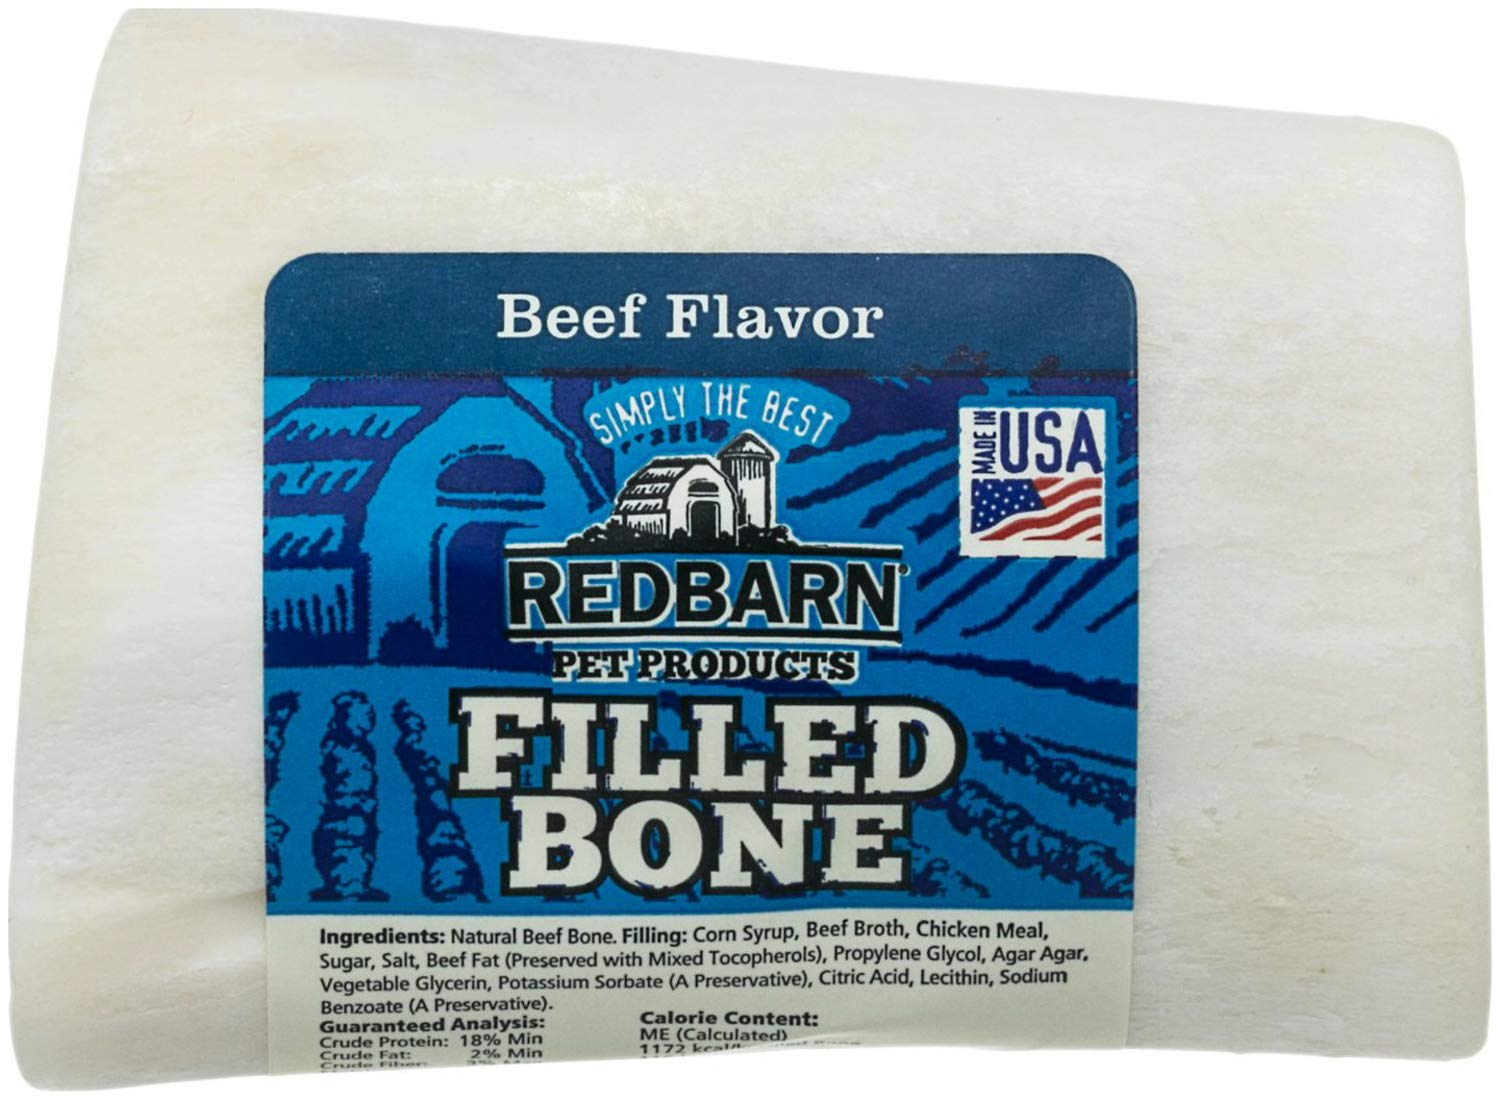 Redbarn Bone Small Filled Beefy